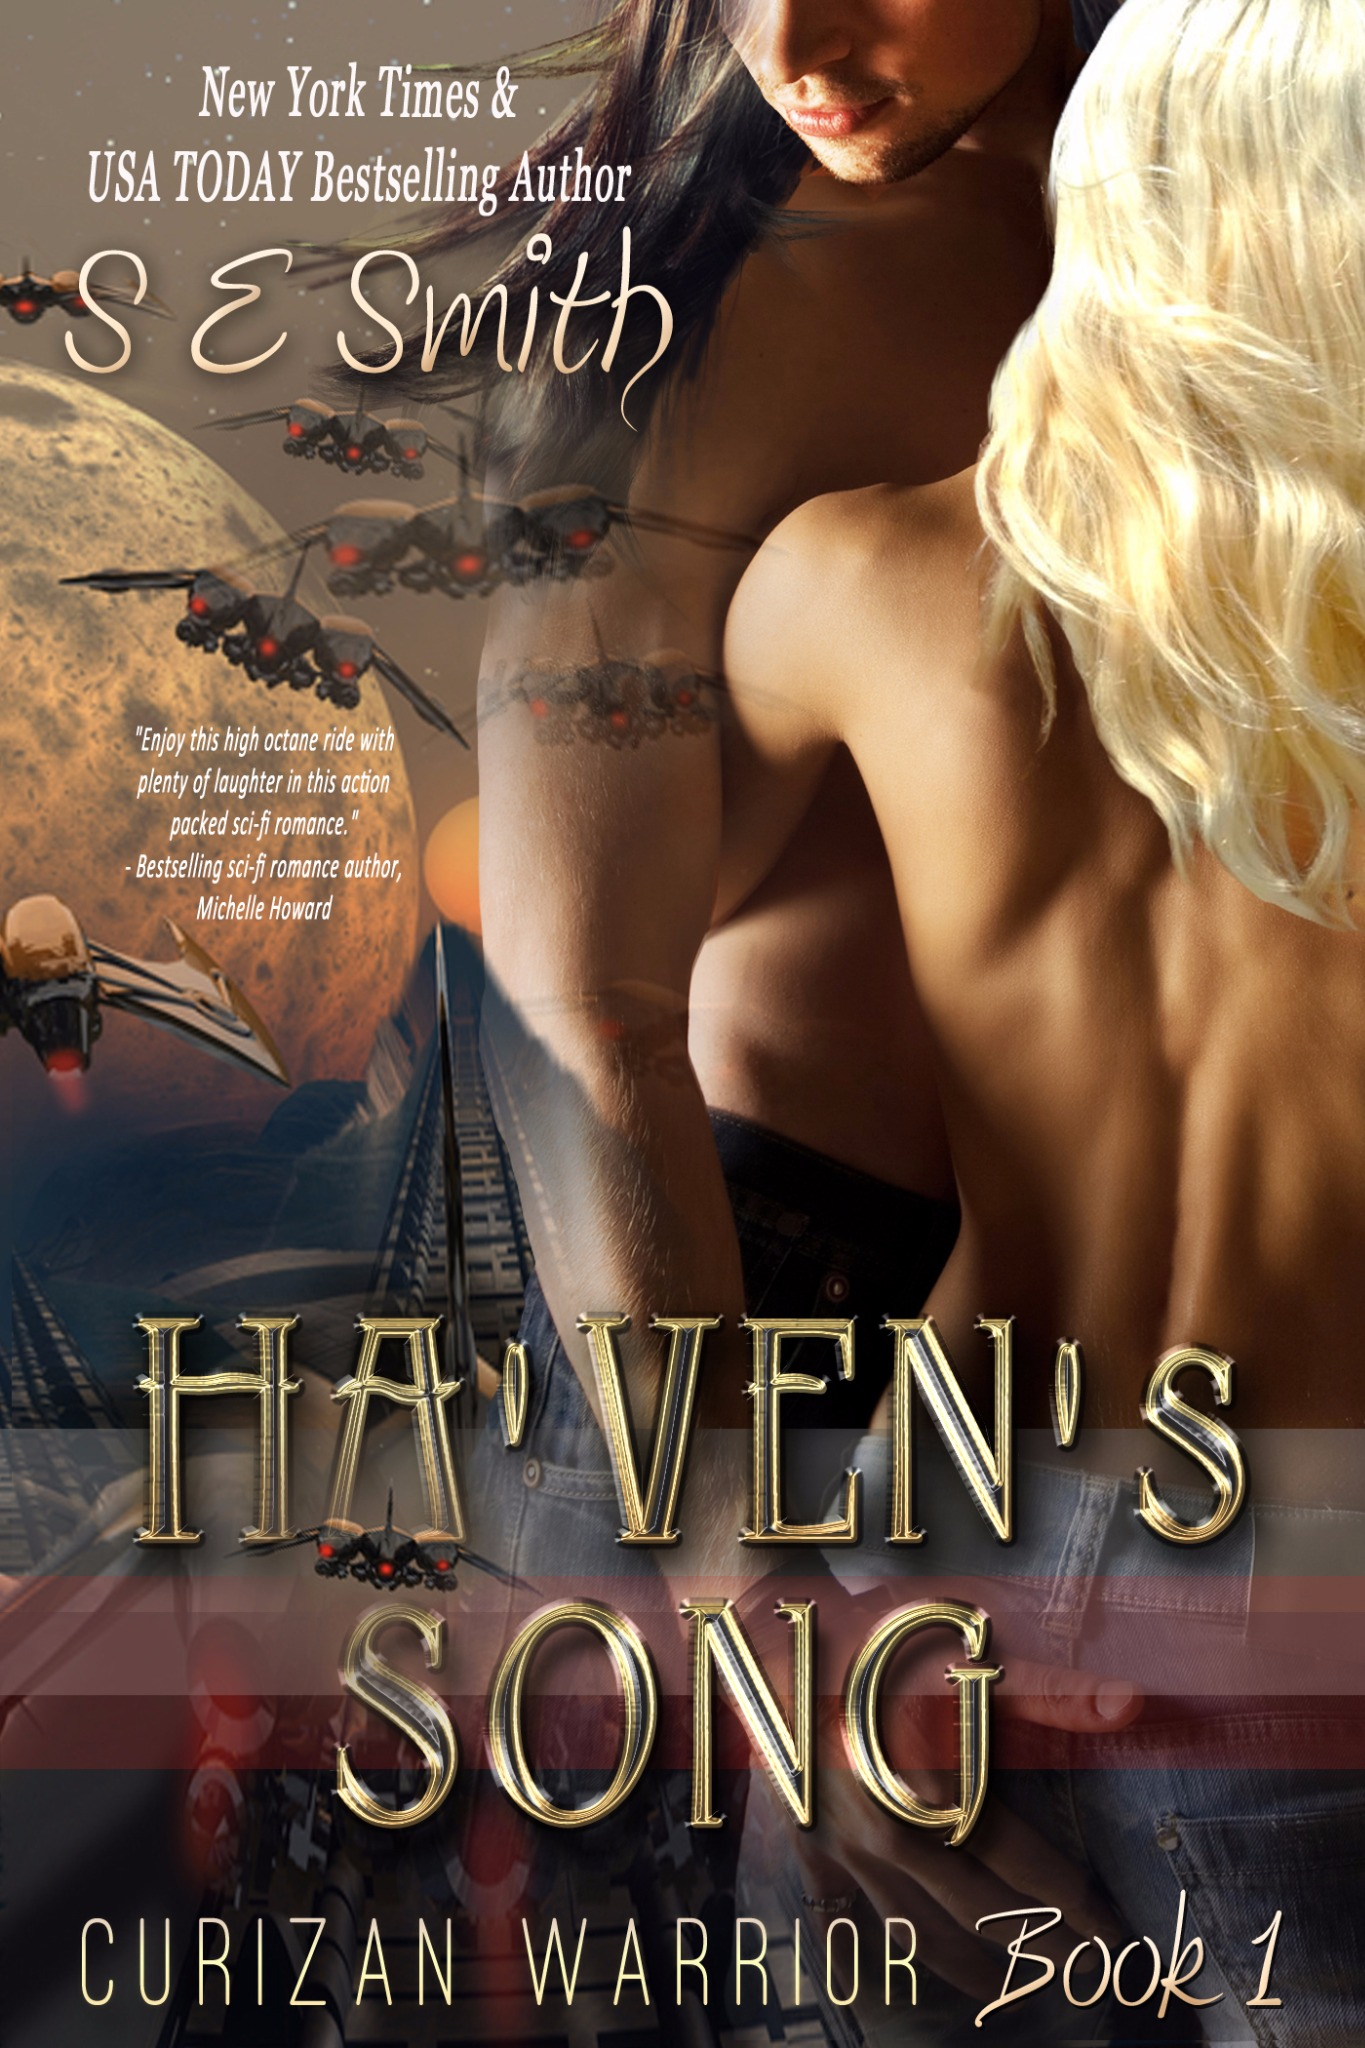 Ha'ven's Song: Curizan Warrior Book 1 (Paperback)